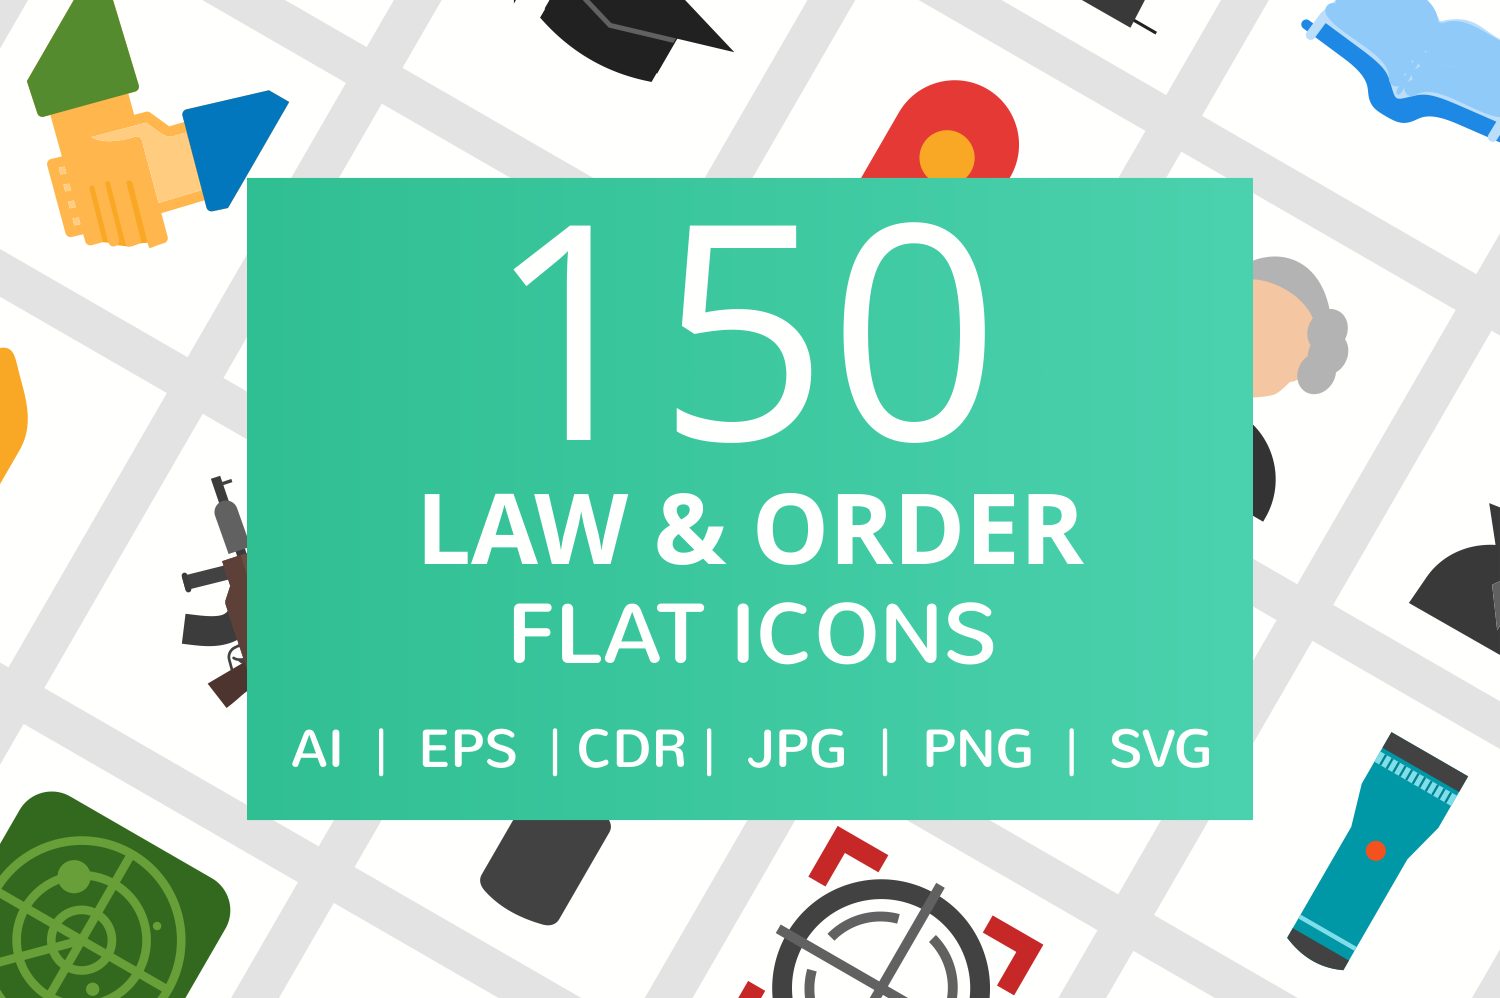 150 Law & Order Flat Icons example image 1